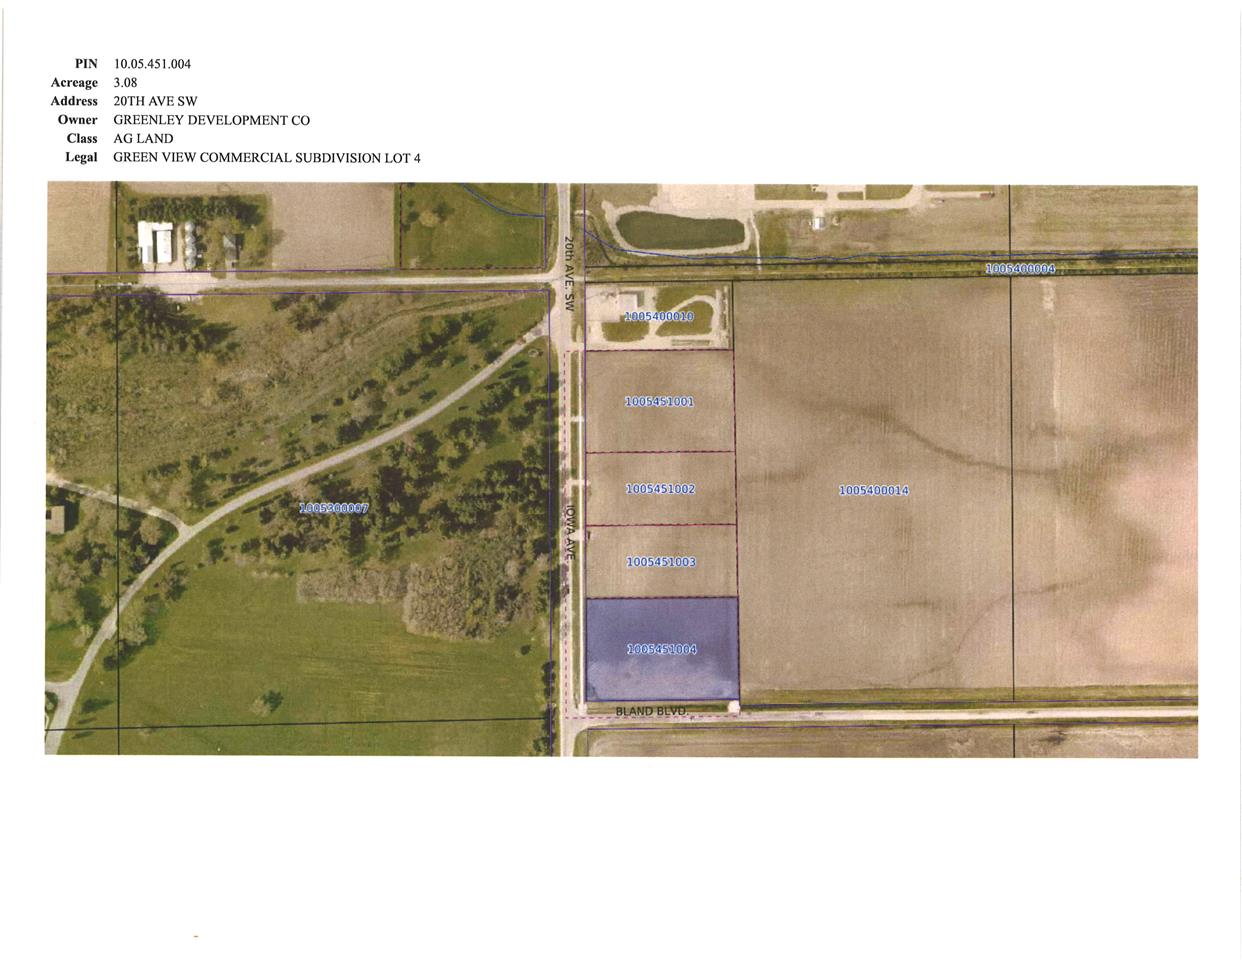 TBD 20th Ave. S.W., Independence, IA 50644 - Independence, IA real estate listing